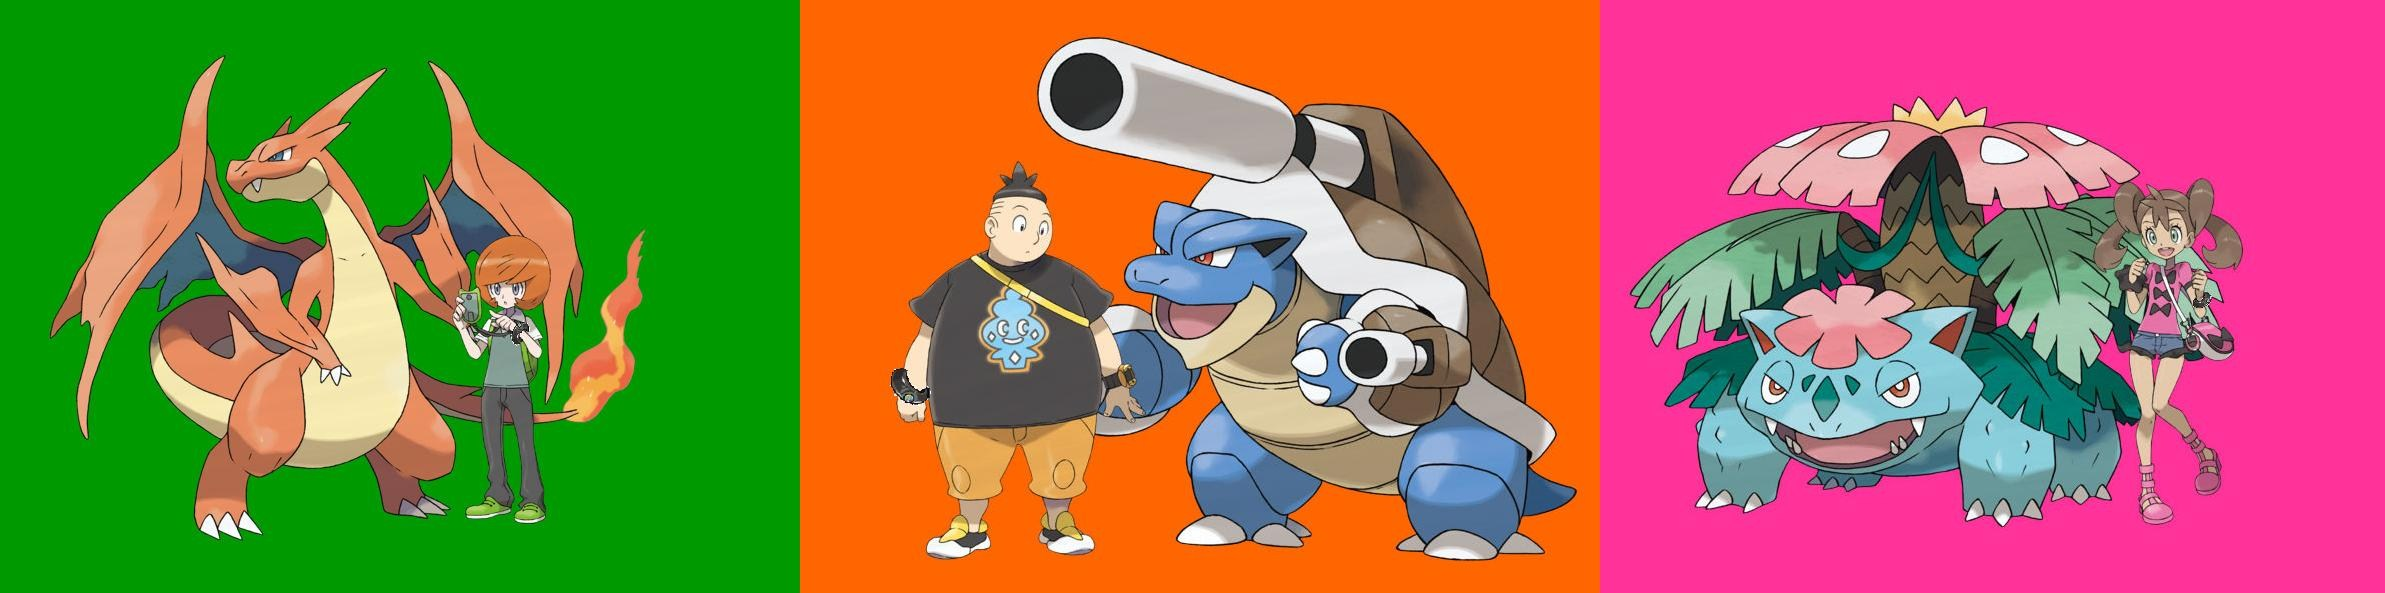 Trevor,Tierno and Shauna with their Mega Evolved Starter Pokemon from the Kanto region.